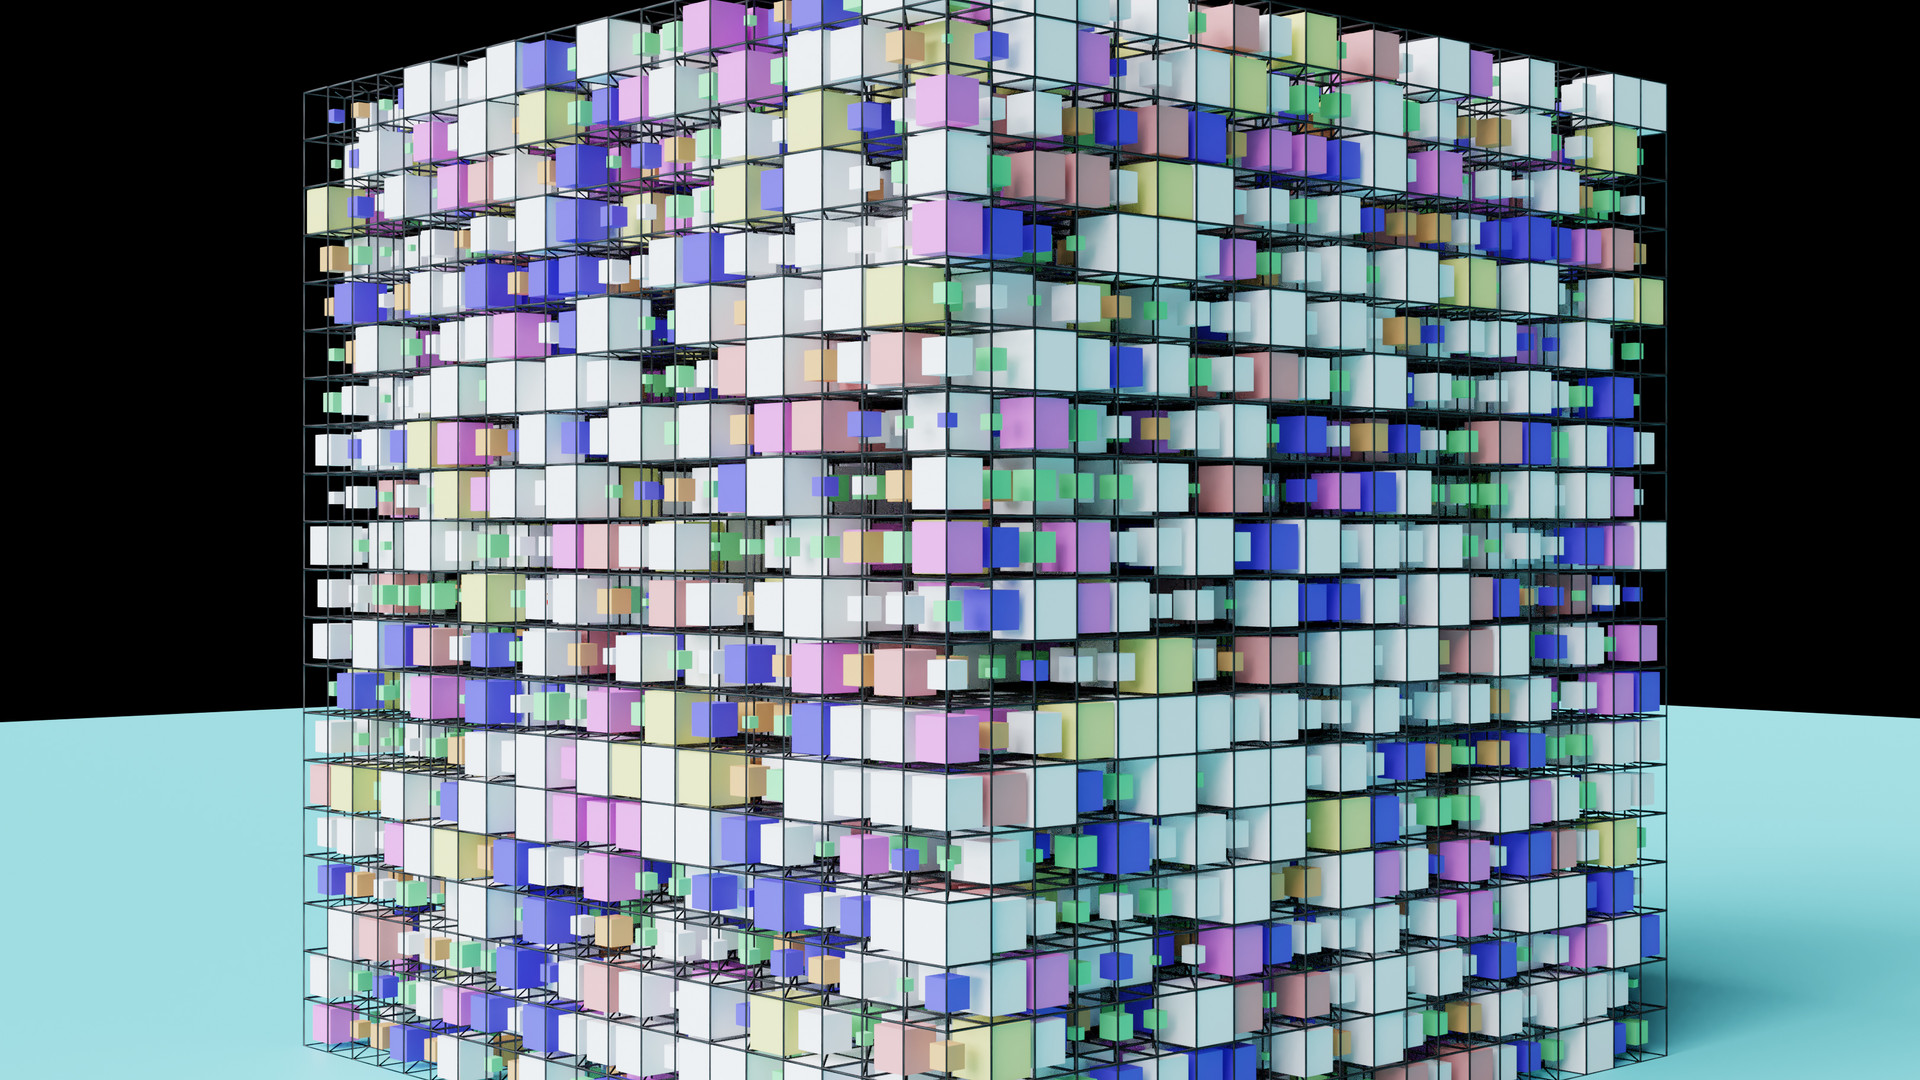 Wireframe & Scaled Cubes